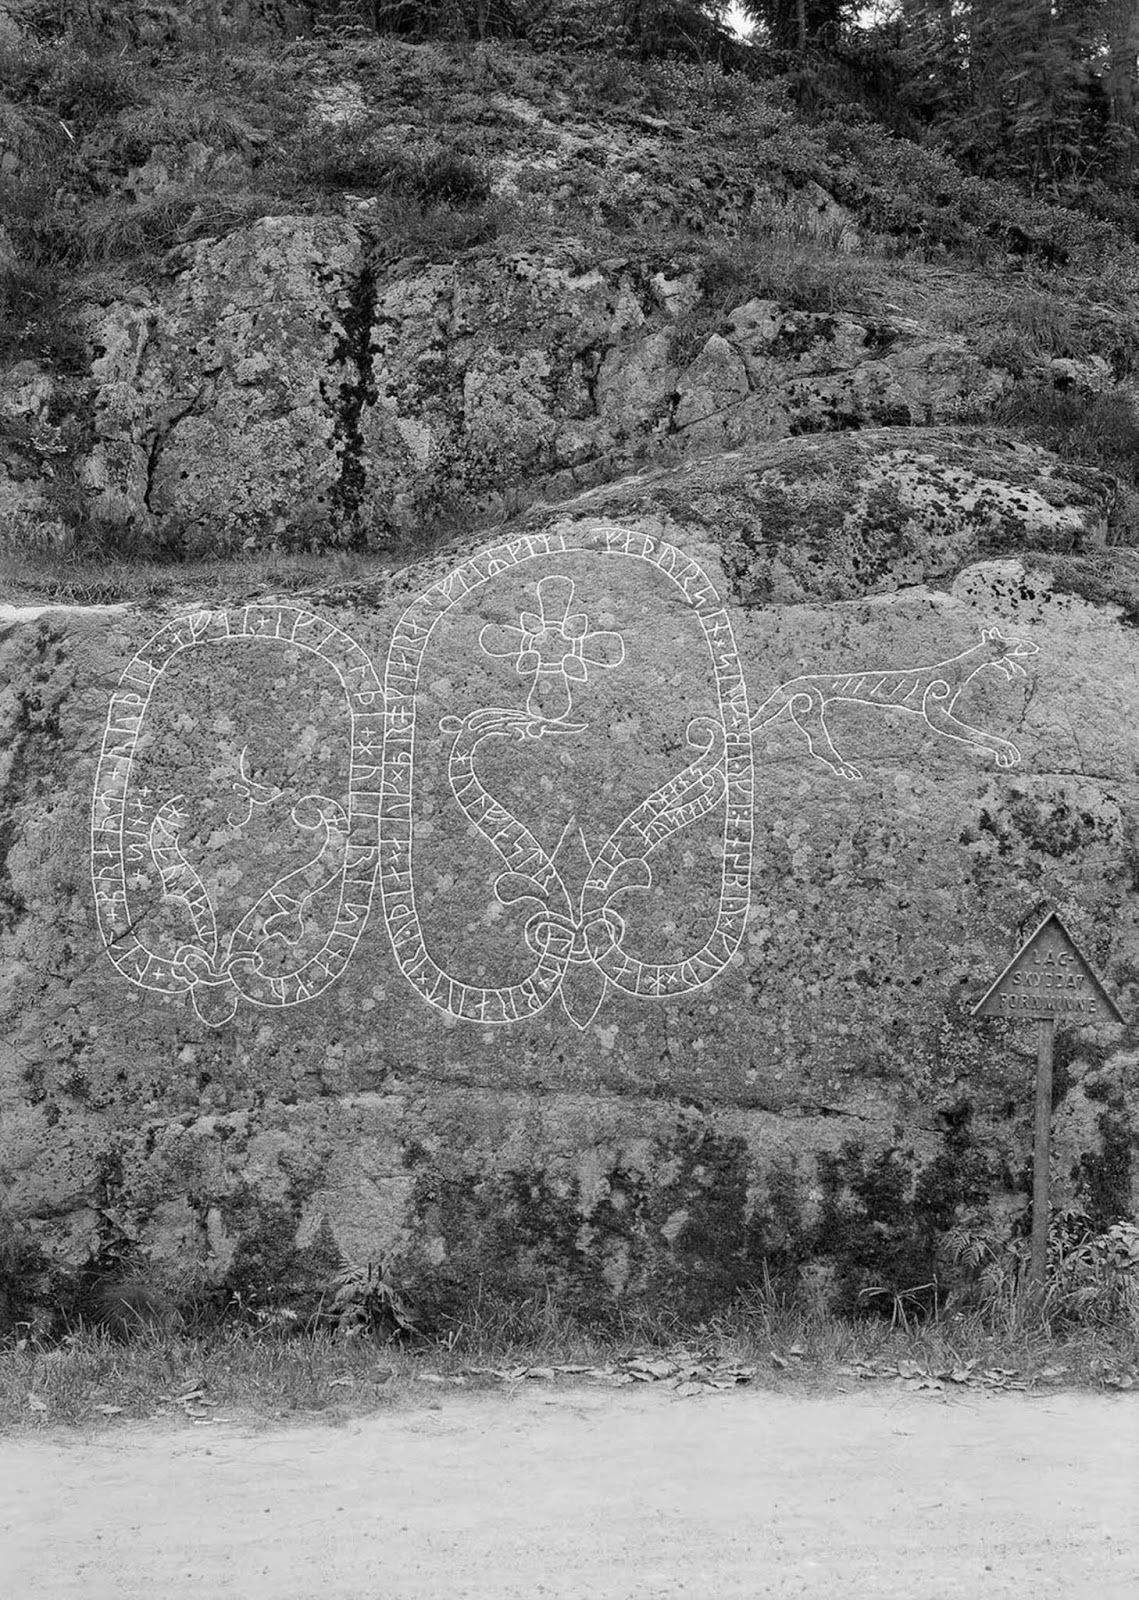 The Holmfast carving along a road in Södertälje. The inscriptions read,